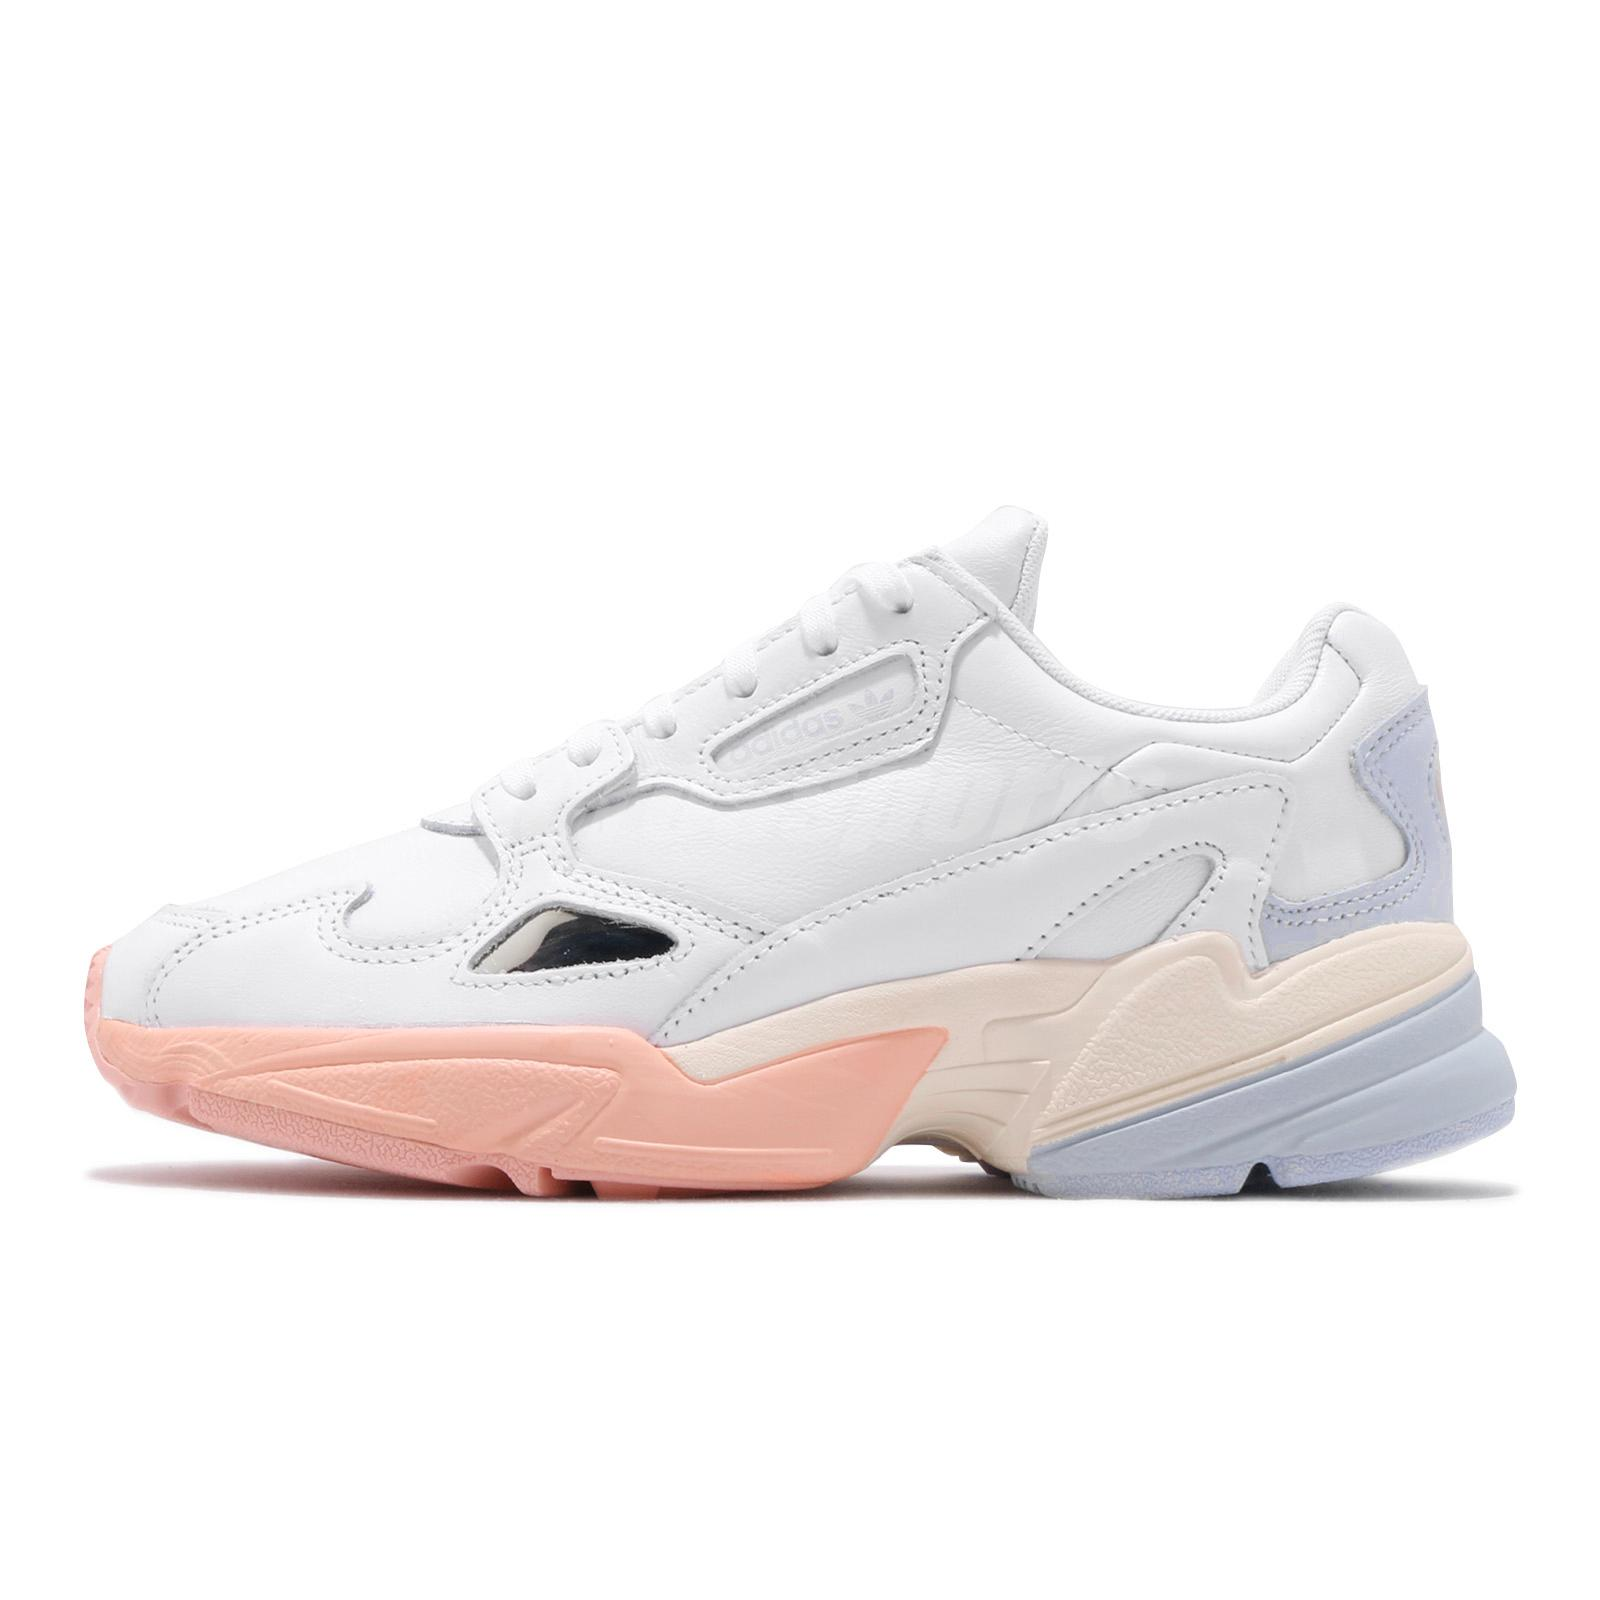 mercenario ladrar Halar  adidas Originals Falcon W White Blue Pink Womens Casual Shoes Sneakers  EG8141 | eBay